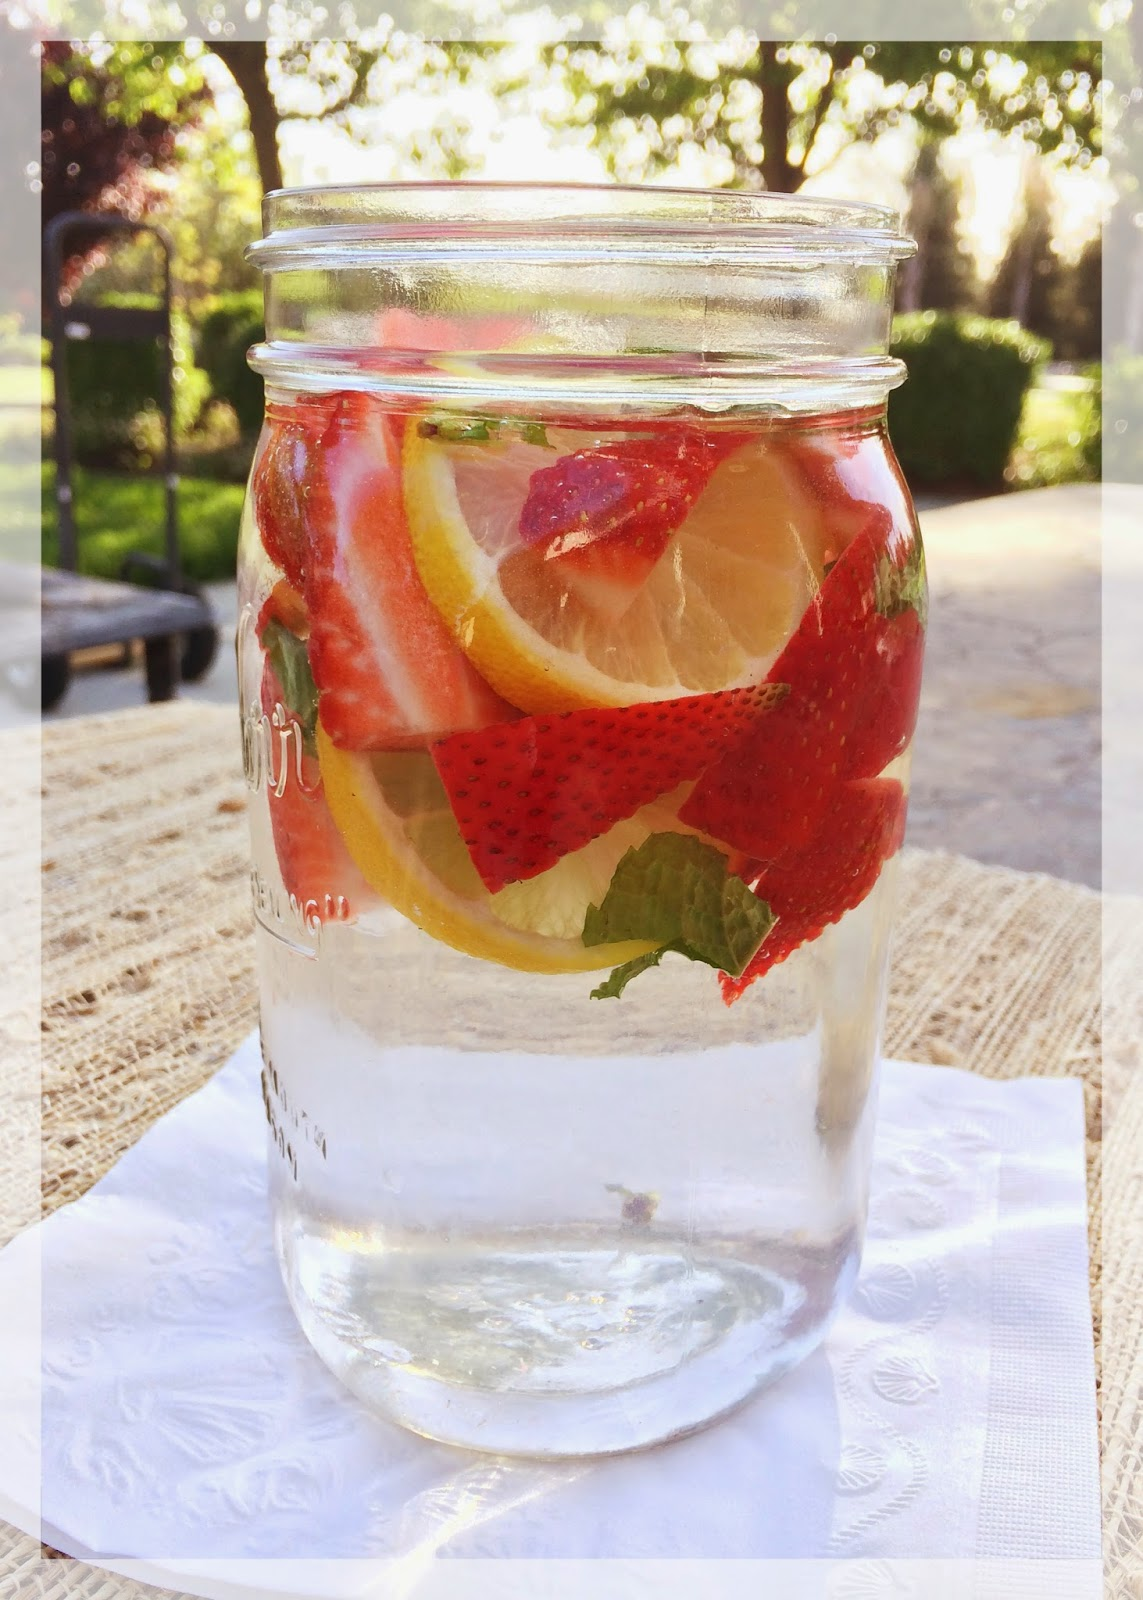 Put slices of strawberries and lemon into your jug or jar. You can put as little or as much fruits as you want. Fill your container with cold water then cover it. Leave in the refrigerator overnight. Your strawberry infused water will be refreshing and tastyin the morning.